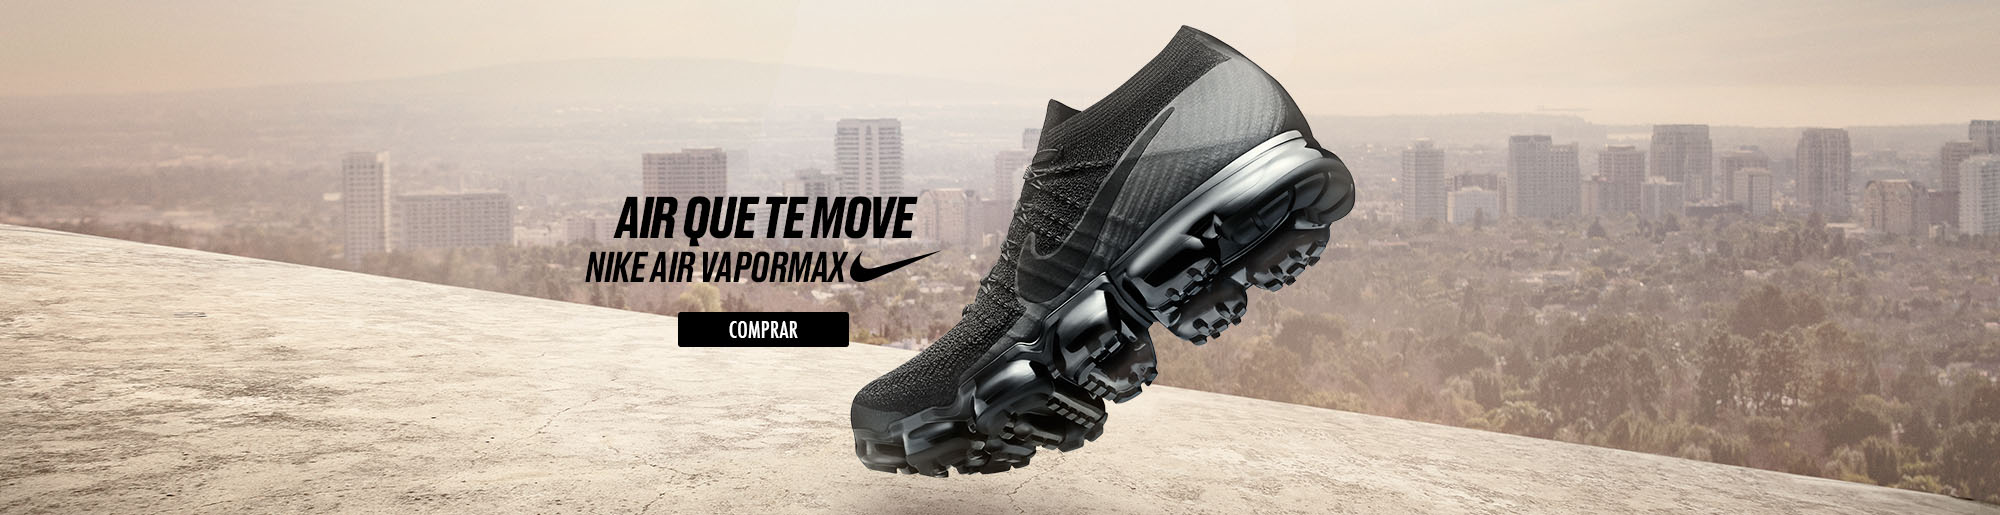 TV CAMP - NIKE VAPORMAX 07/07